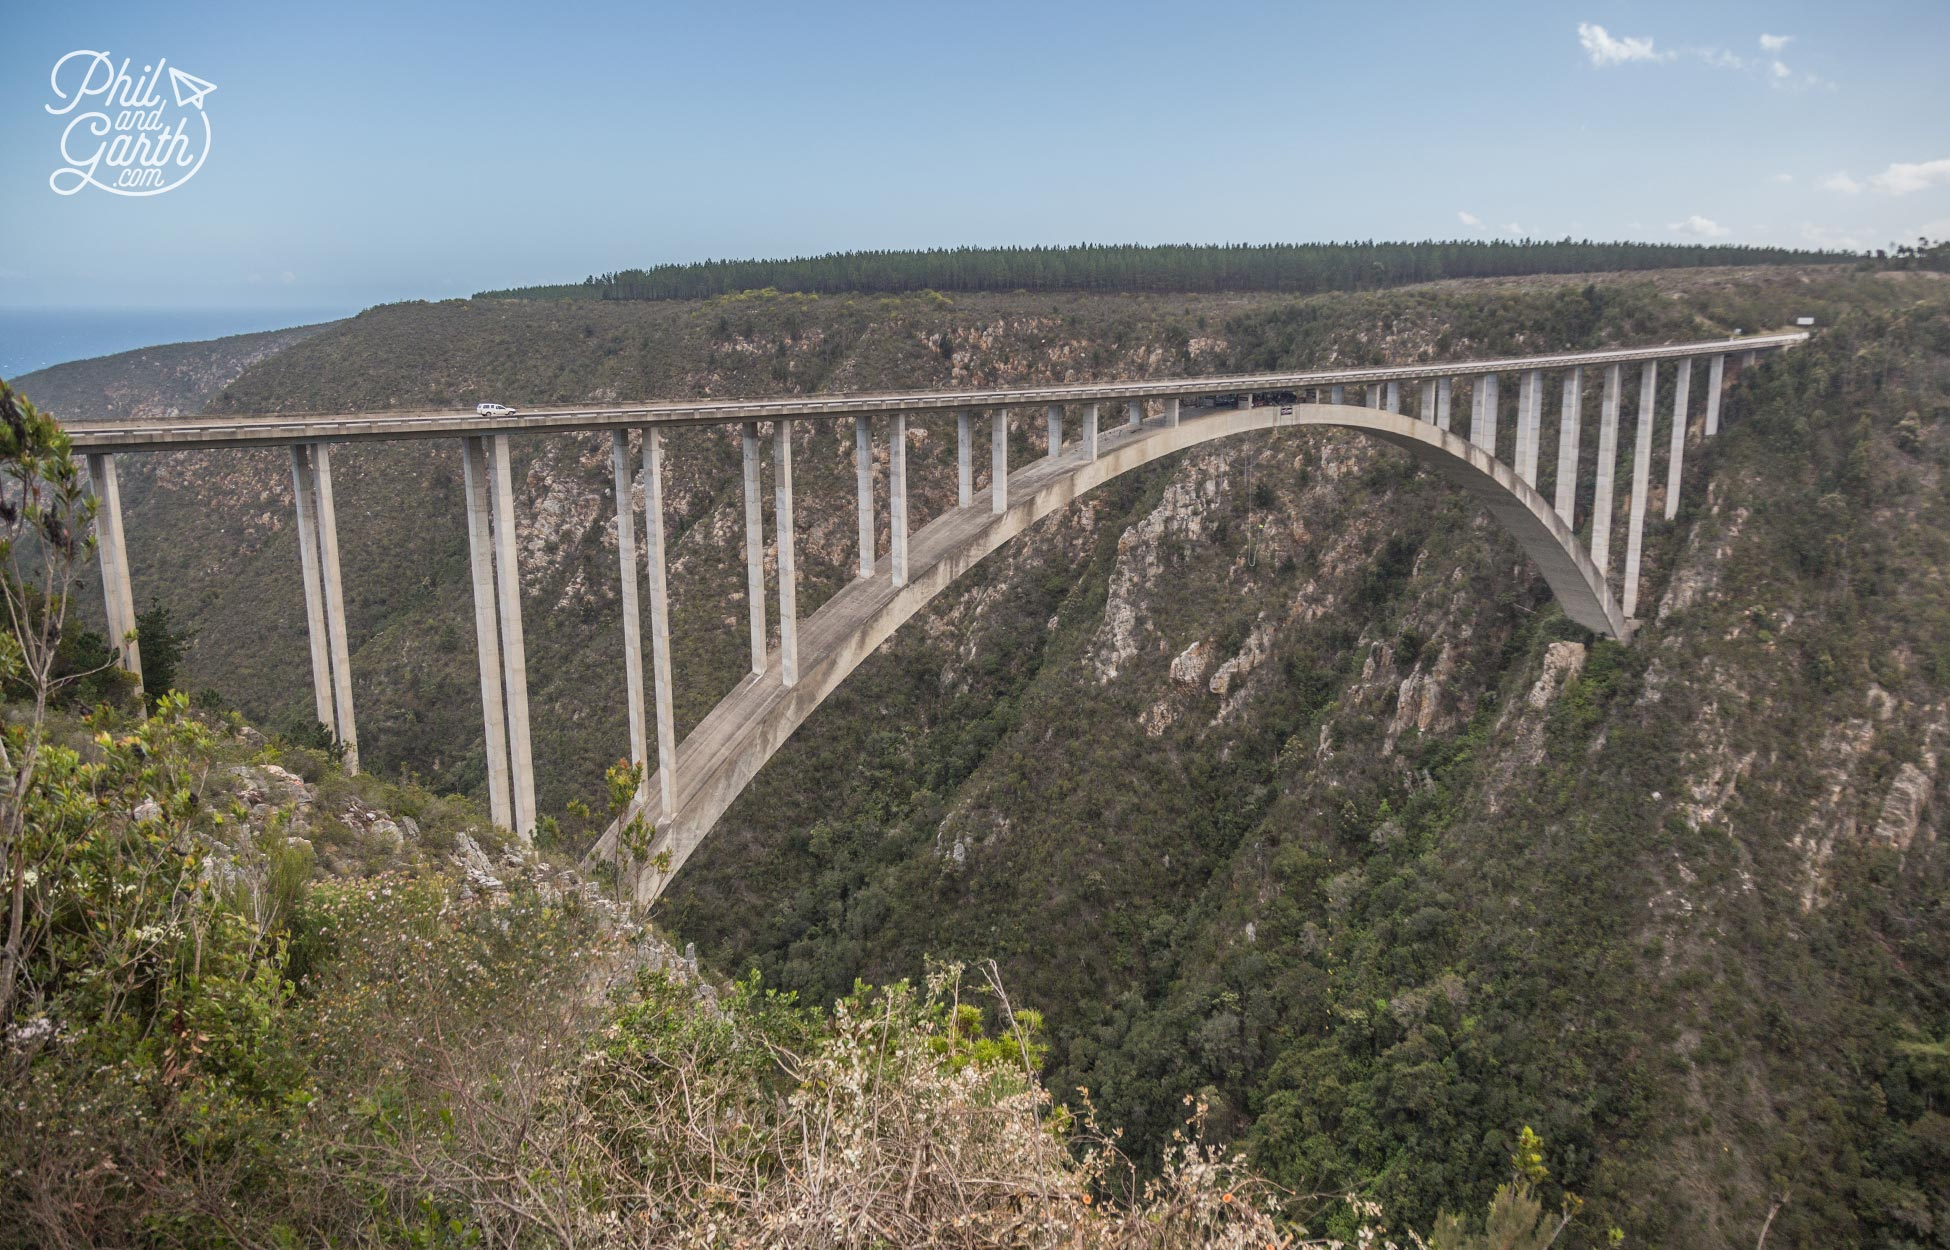 The Garden Route - 4 Day Itinerary - Thrill seekers will love Bloukrans Bungy from Africa's biggest bridge